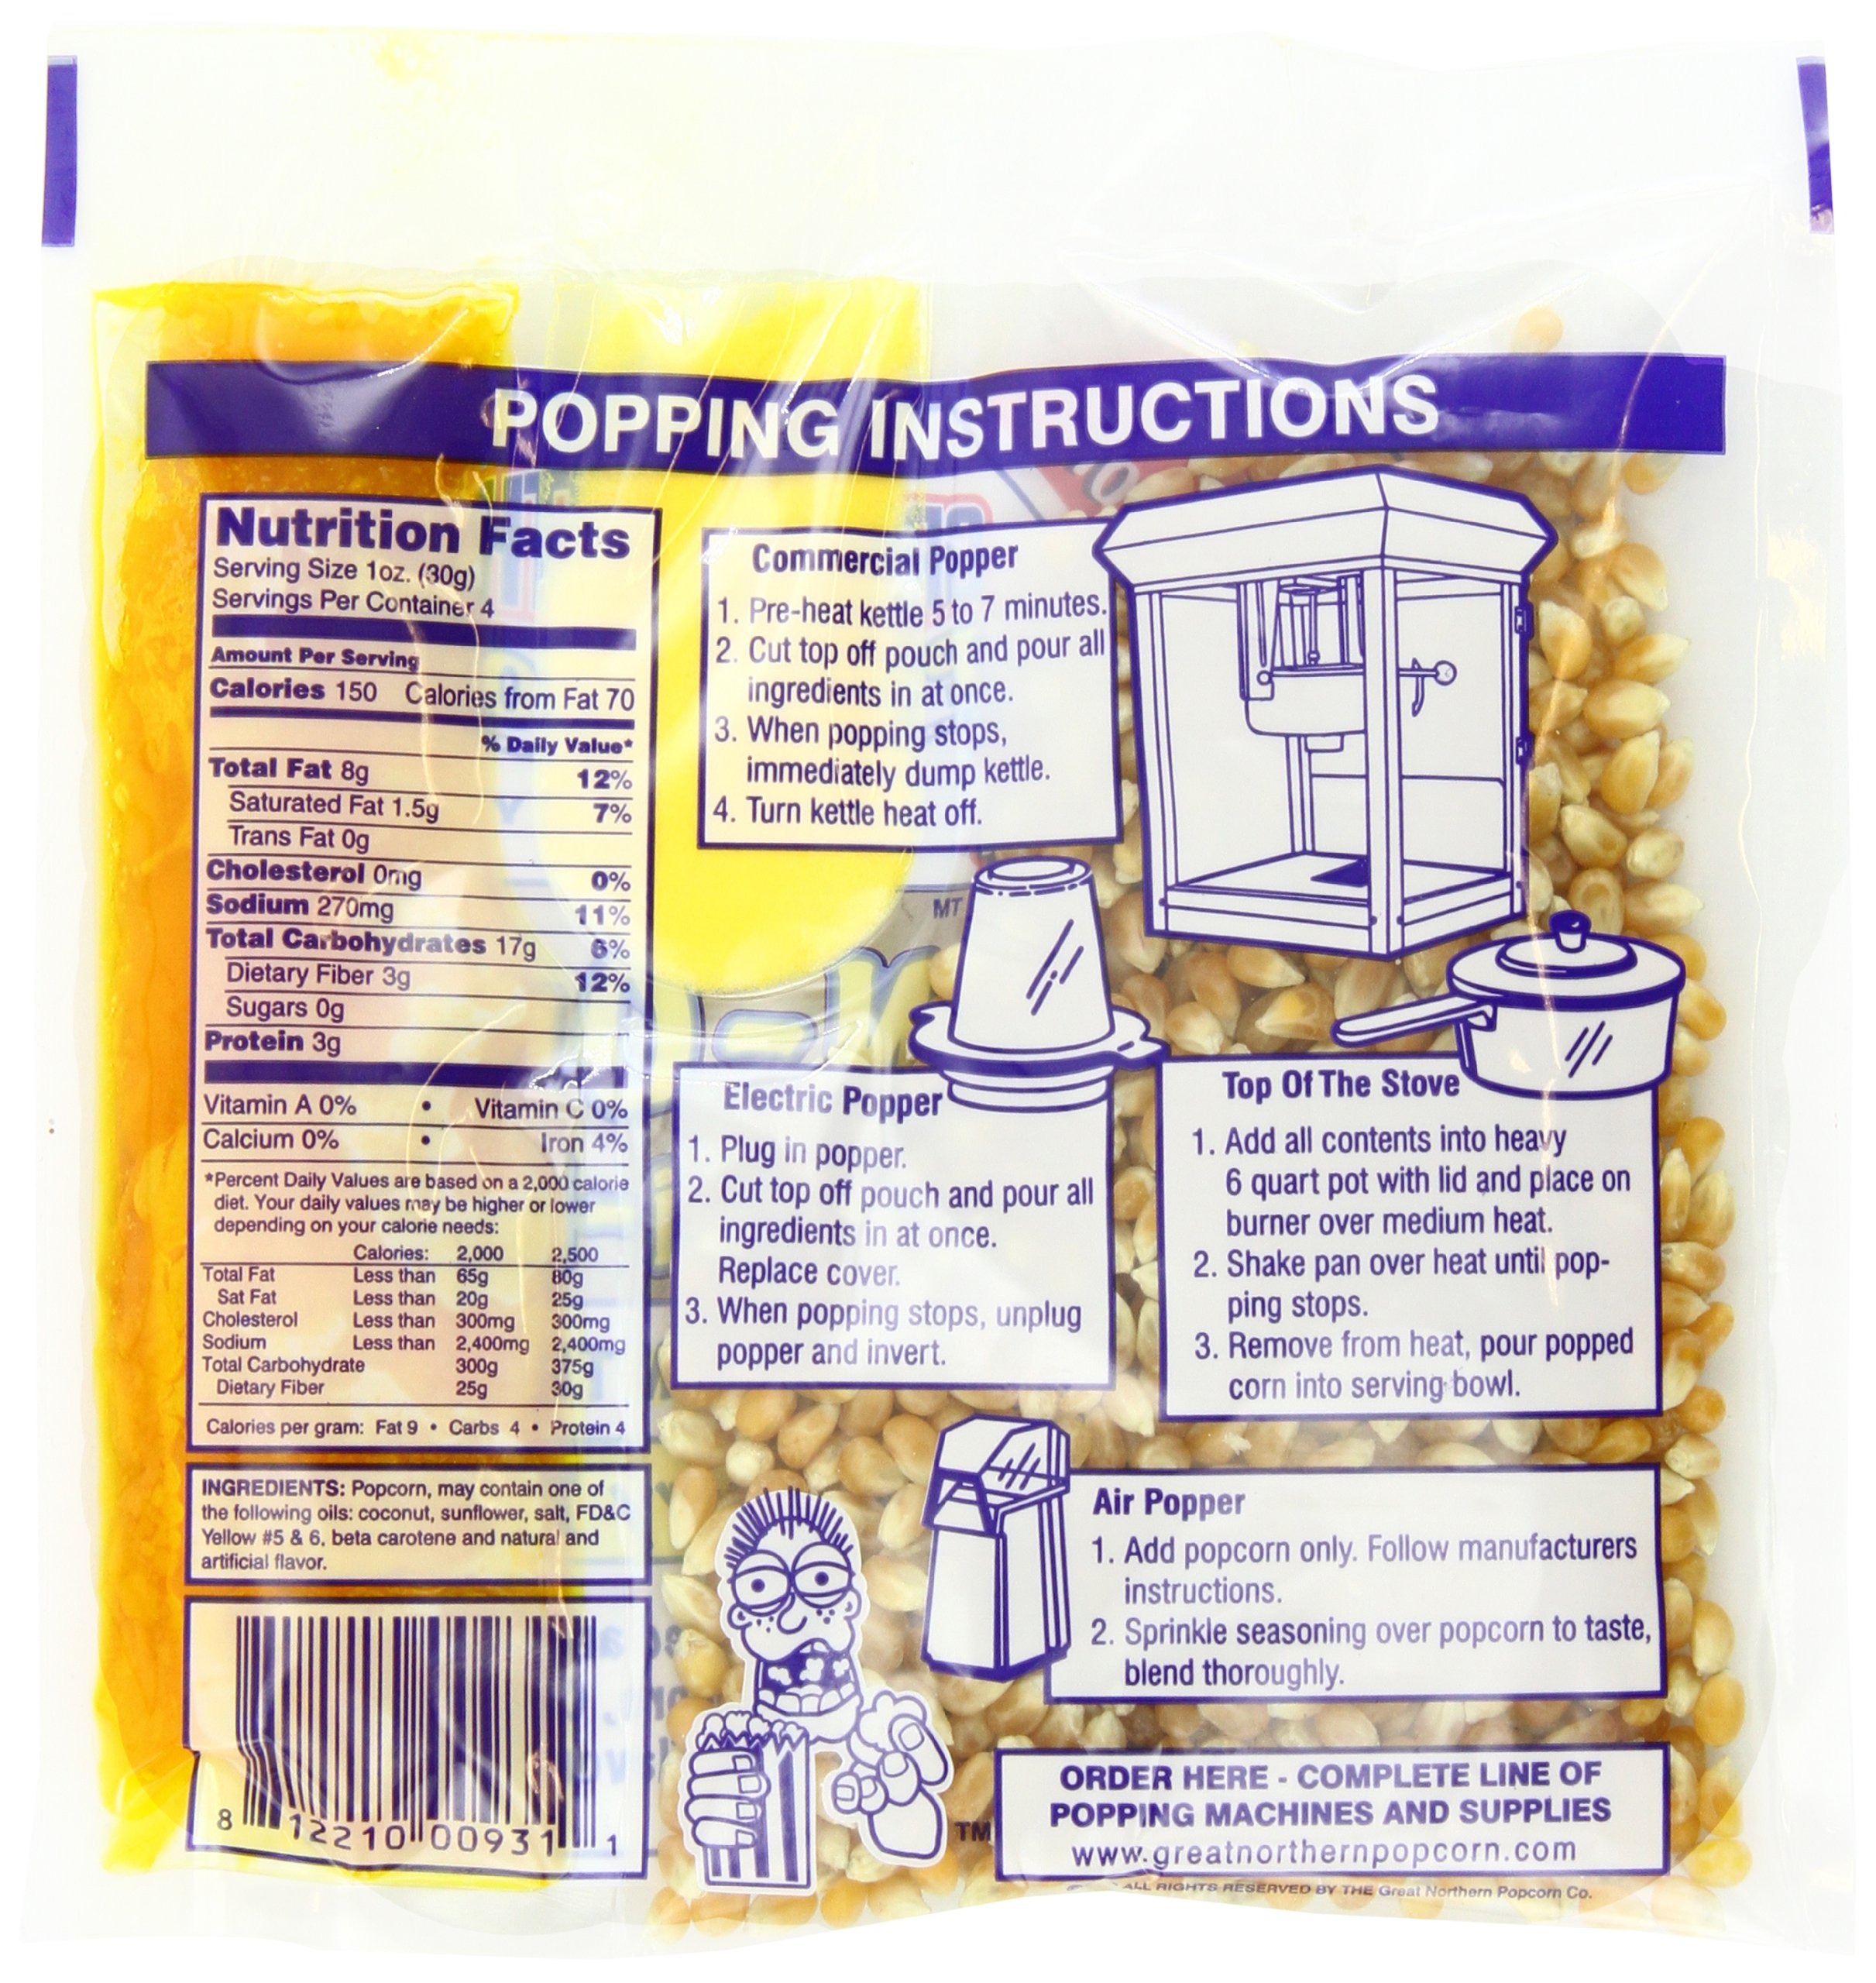 4100 Great Northern Popcorn 4 Ounce Premium Popcorn Portion Packs, Case of 24 by Great Northern Popcorn Company (Image #4)